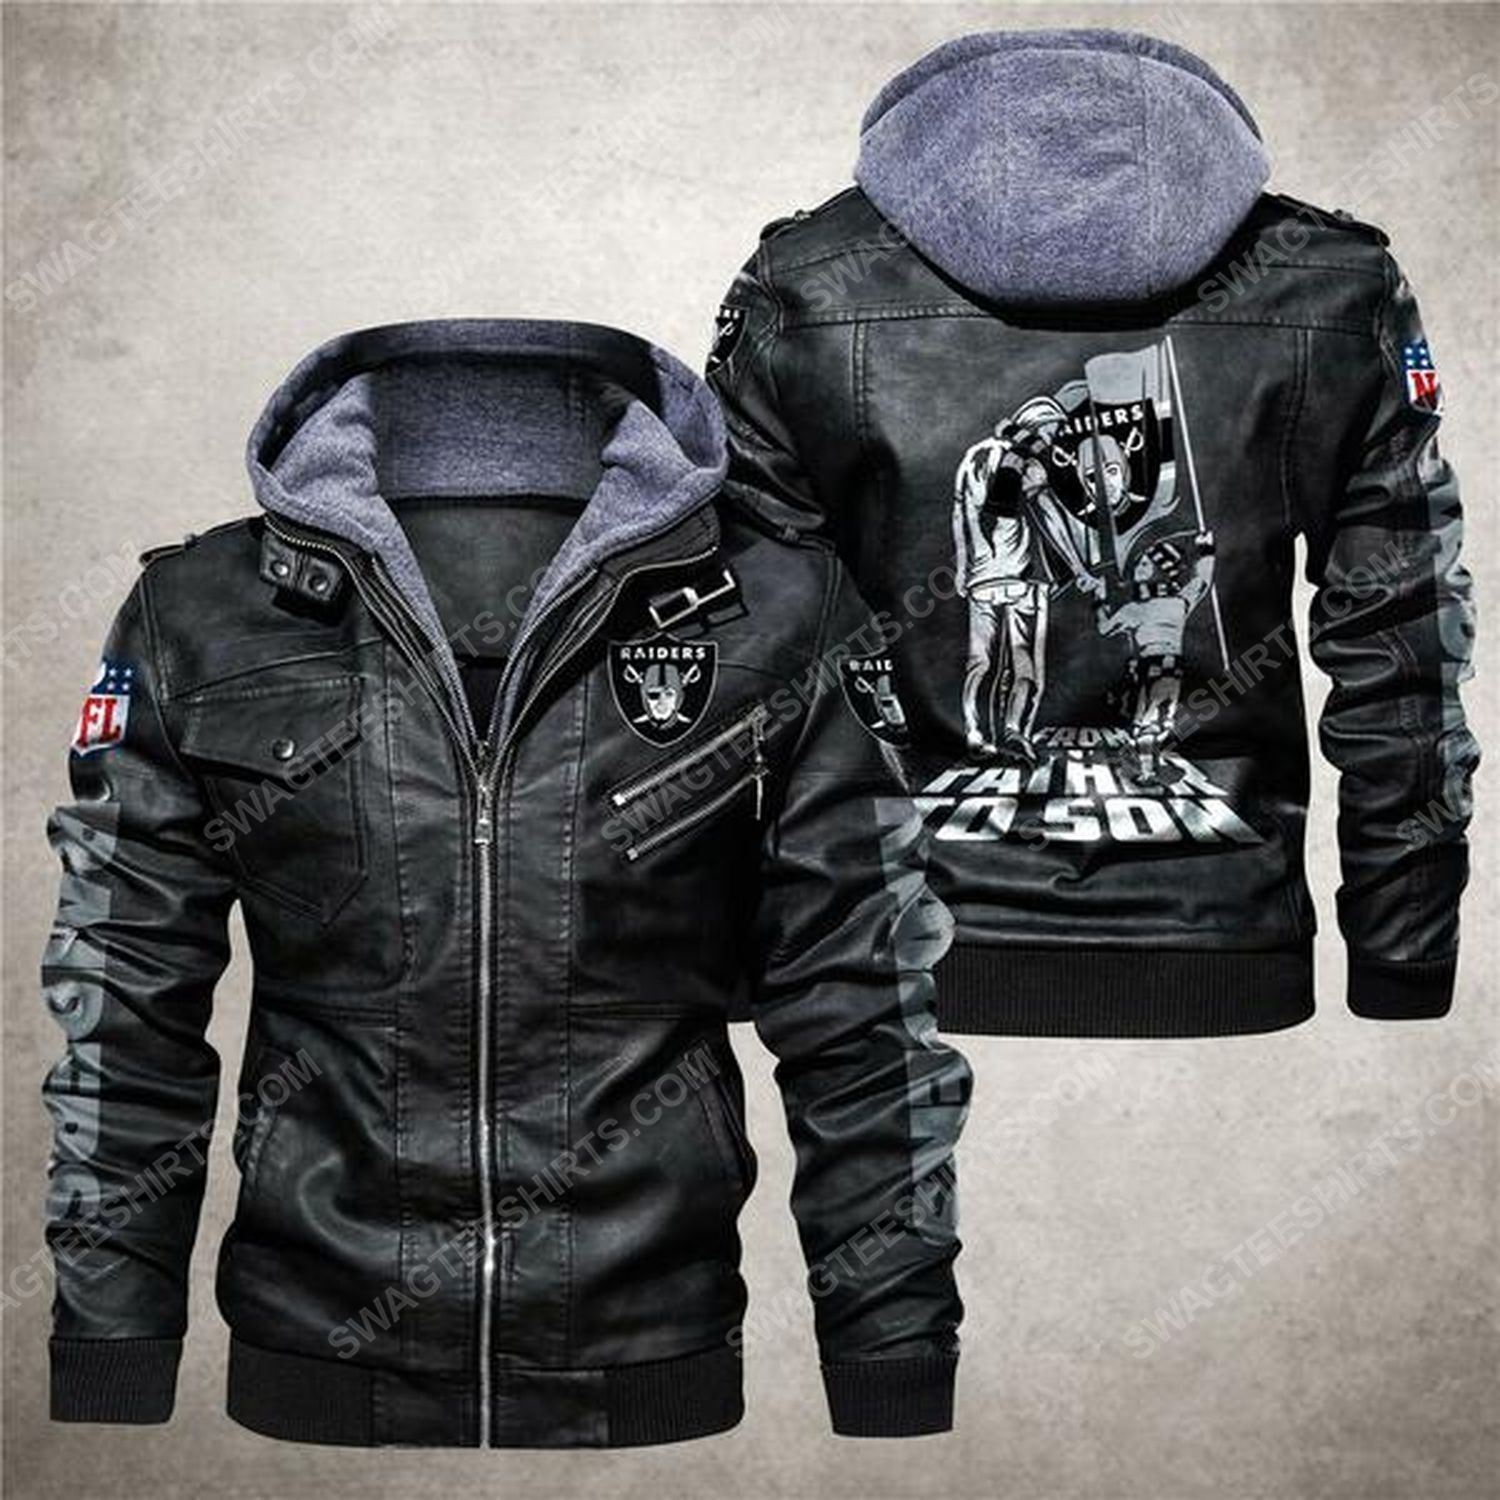 National football league las vegas raiders from father to son leather jacket - black